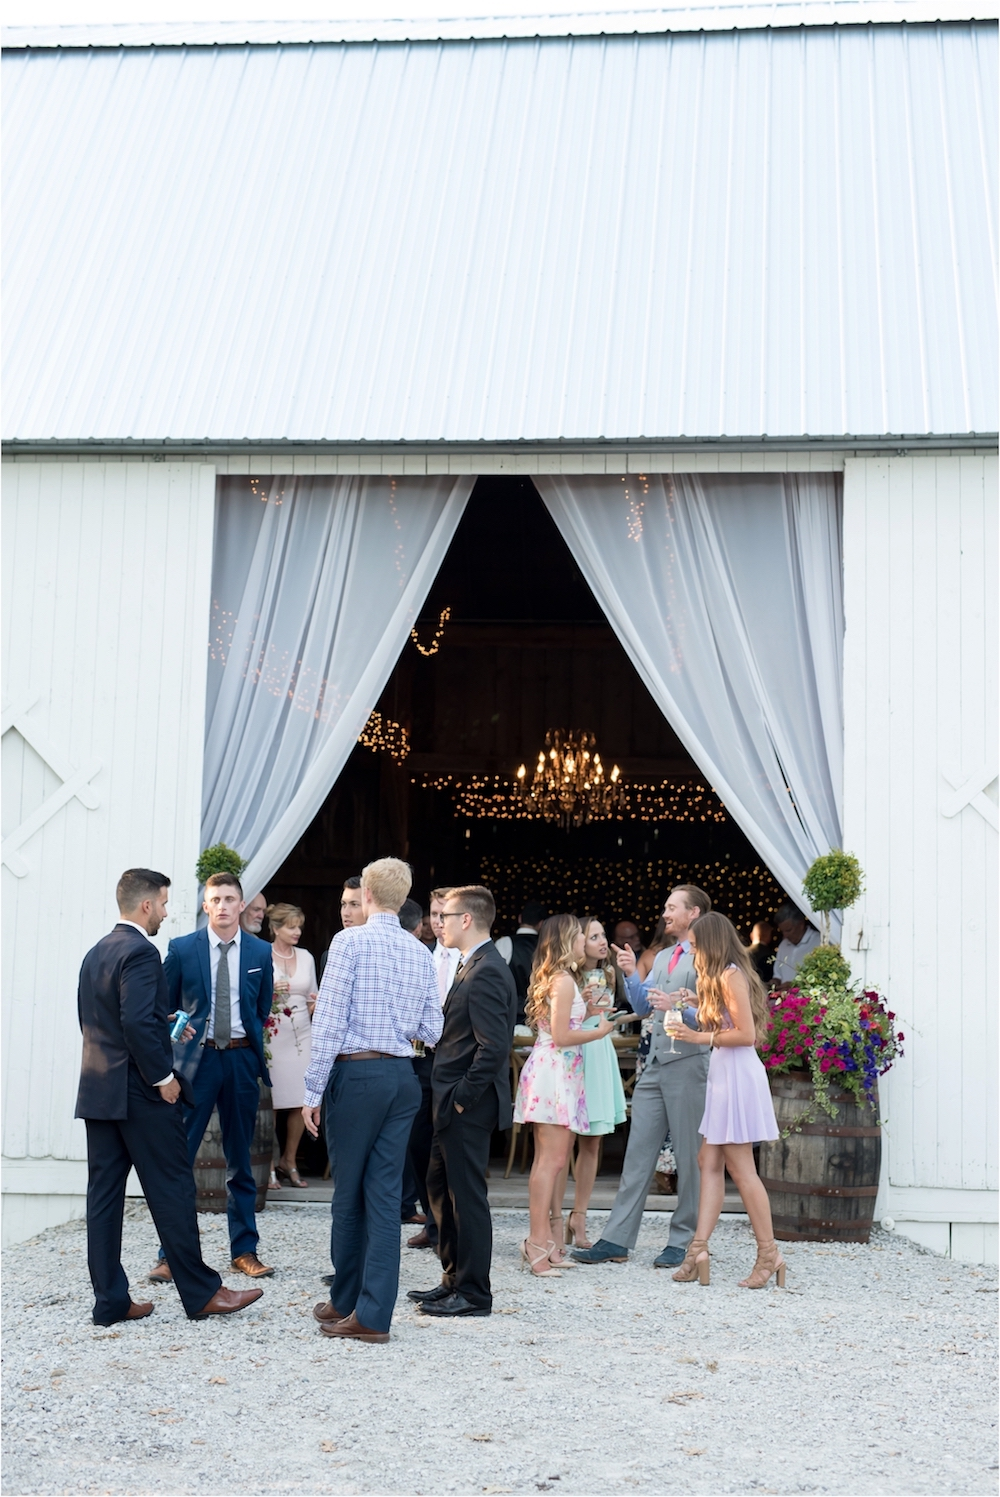 royal-vale-fenton-michigan-elegant-modern-white-barn-wedding-photo-316.jpg